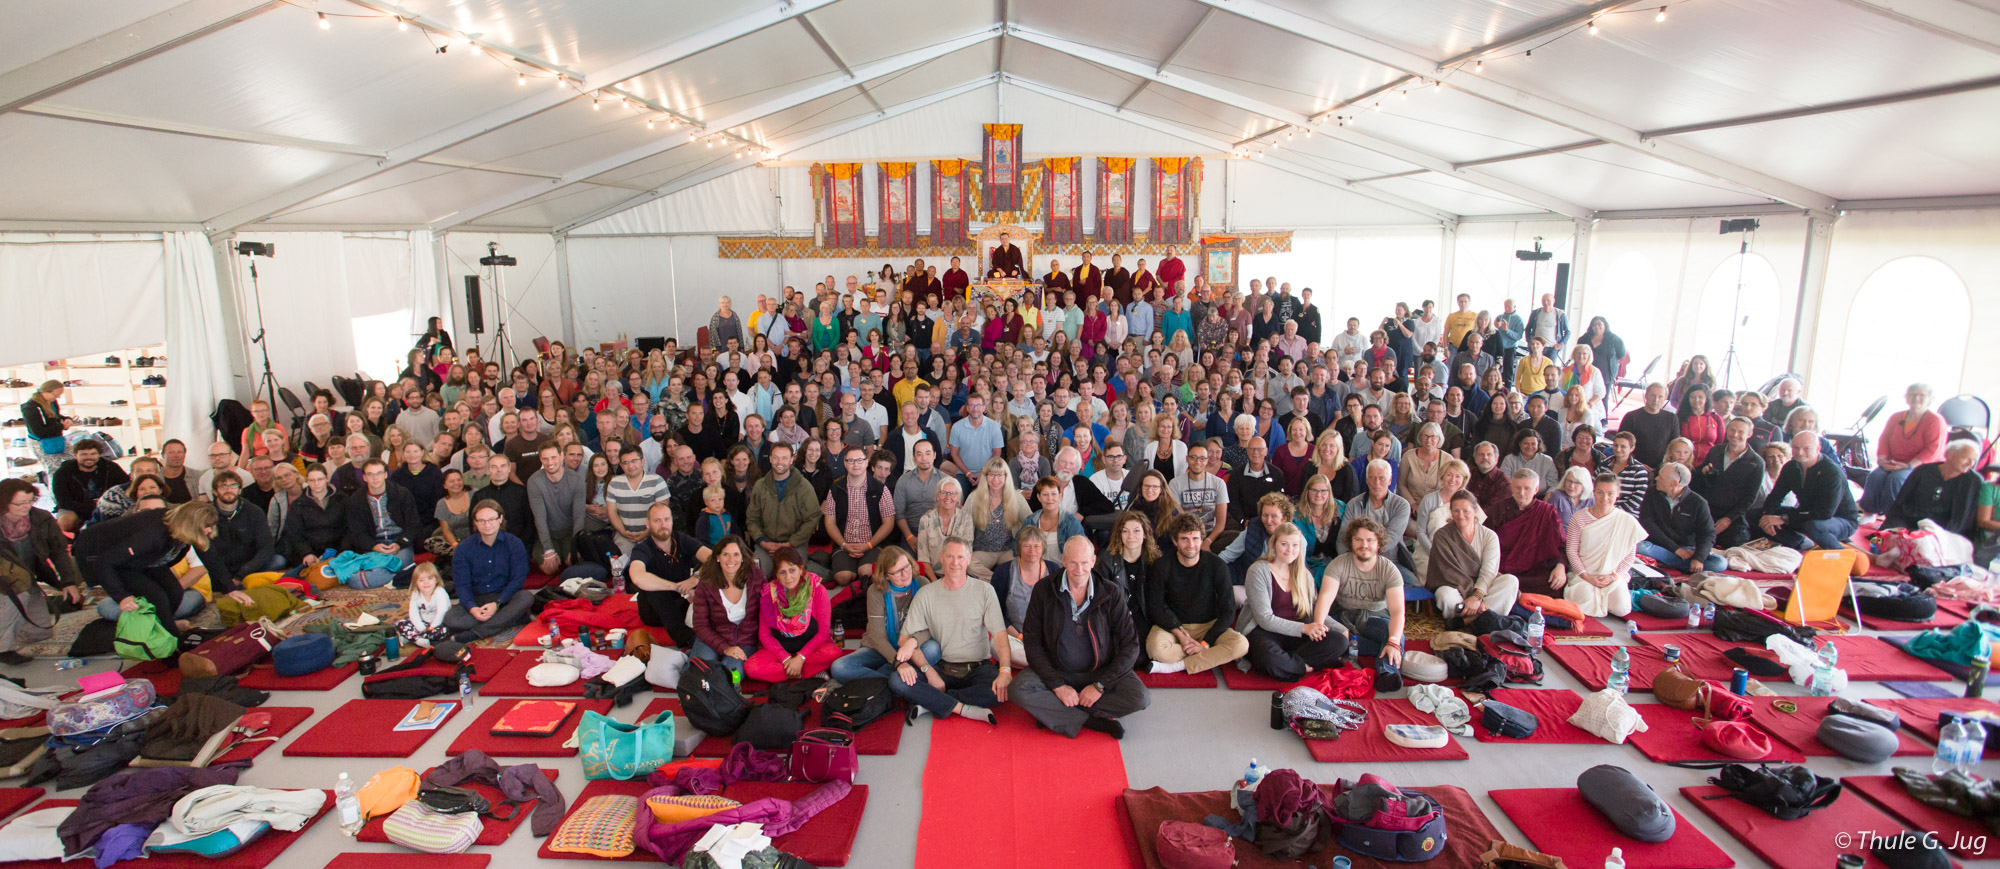 Group Picture with Gyalwa Karmapa and all the people in the big tent